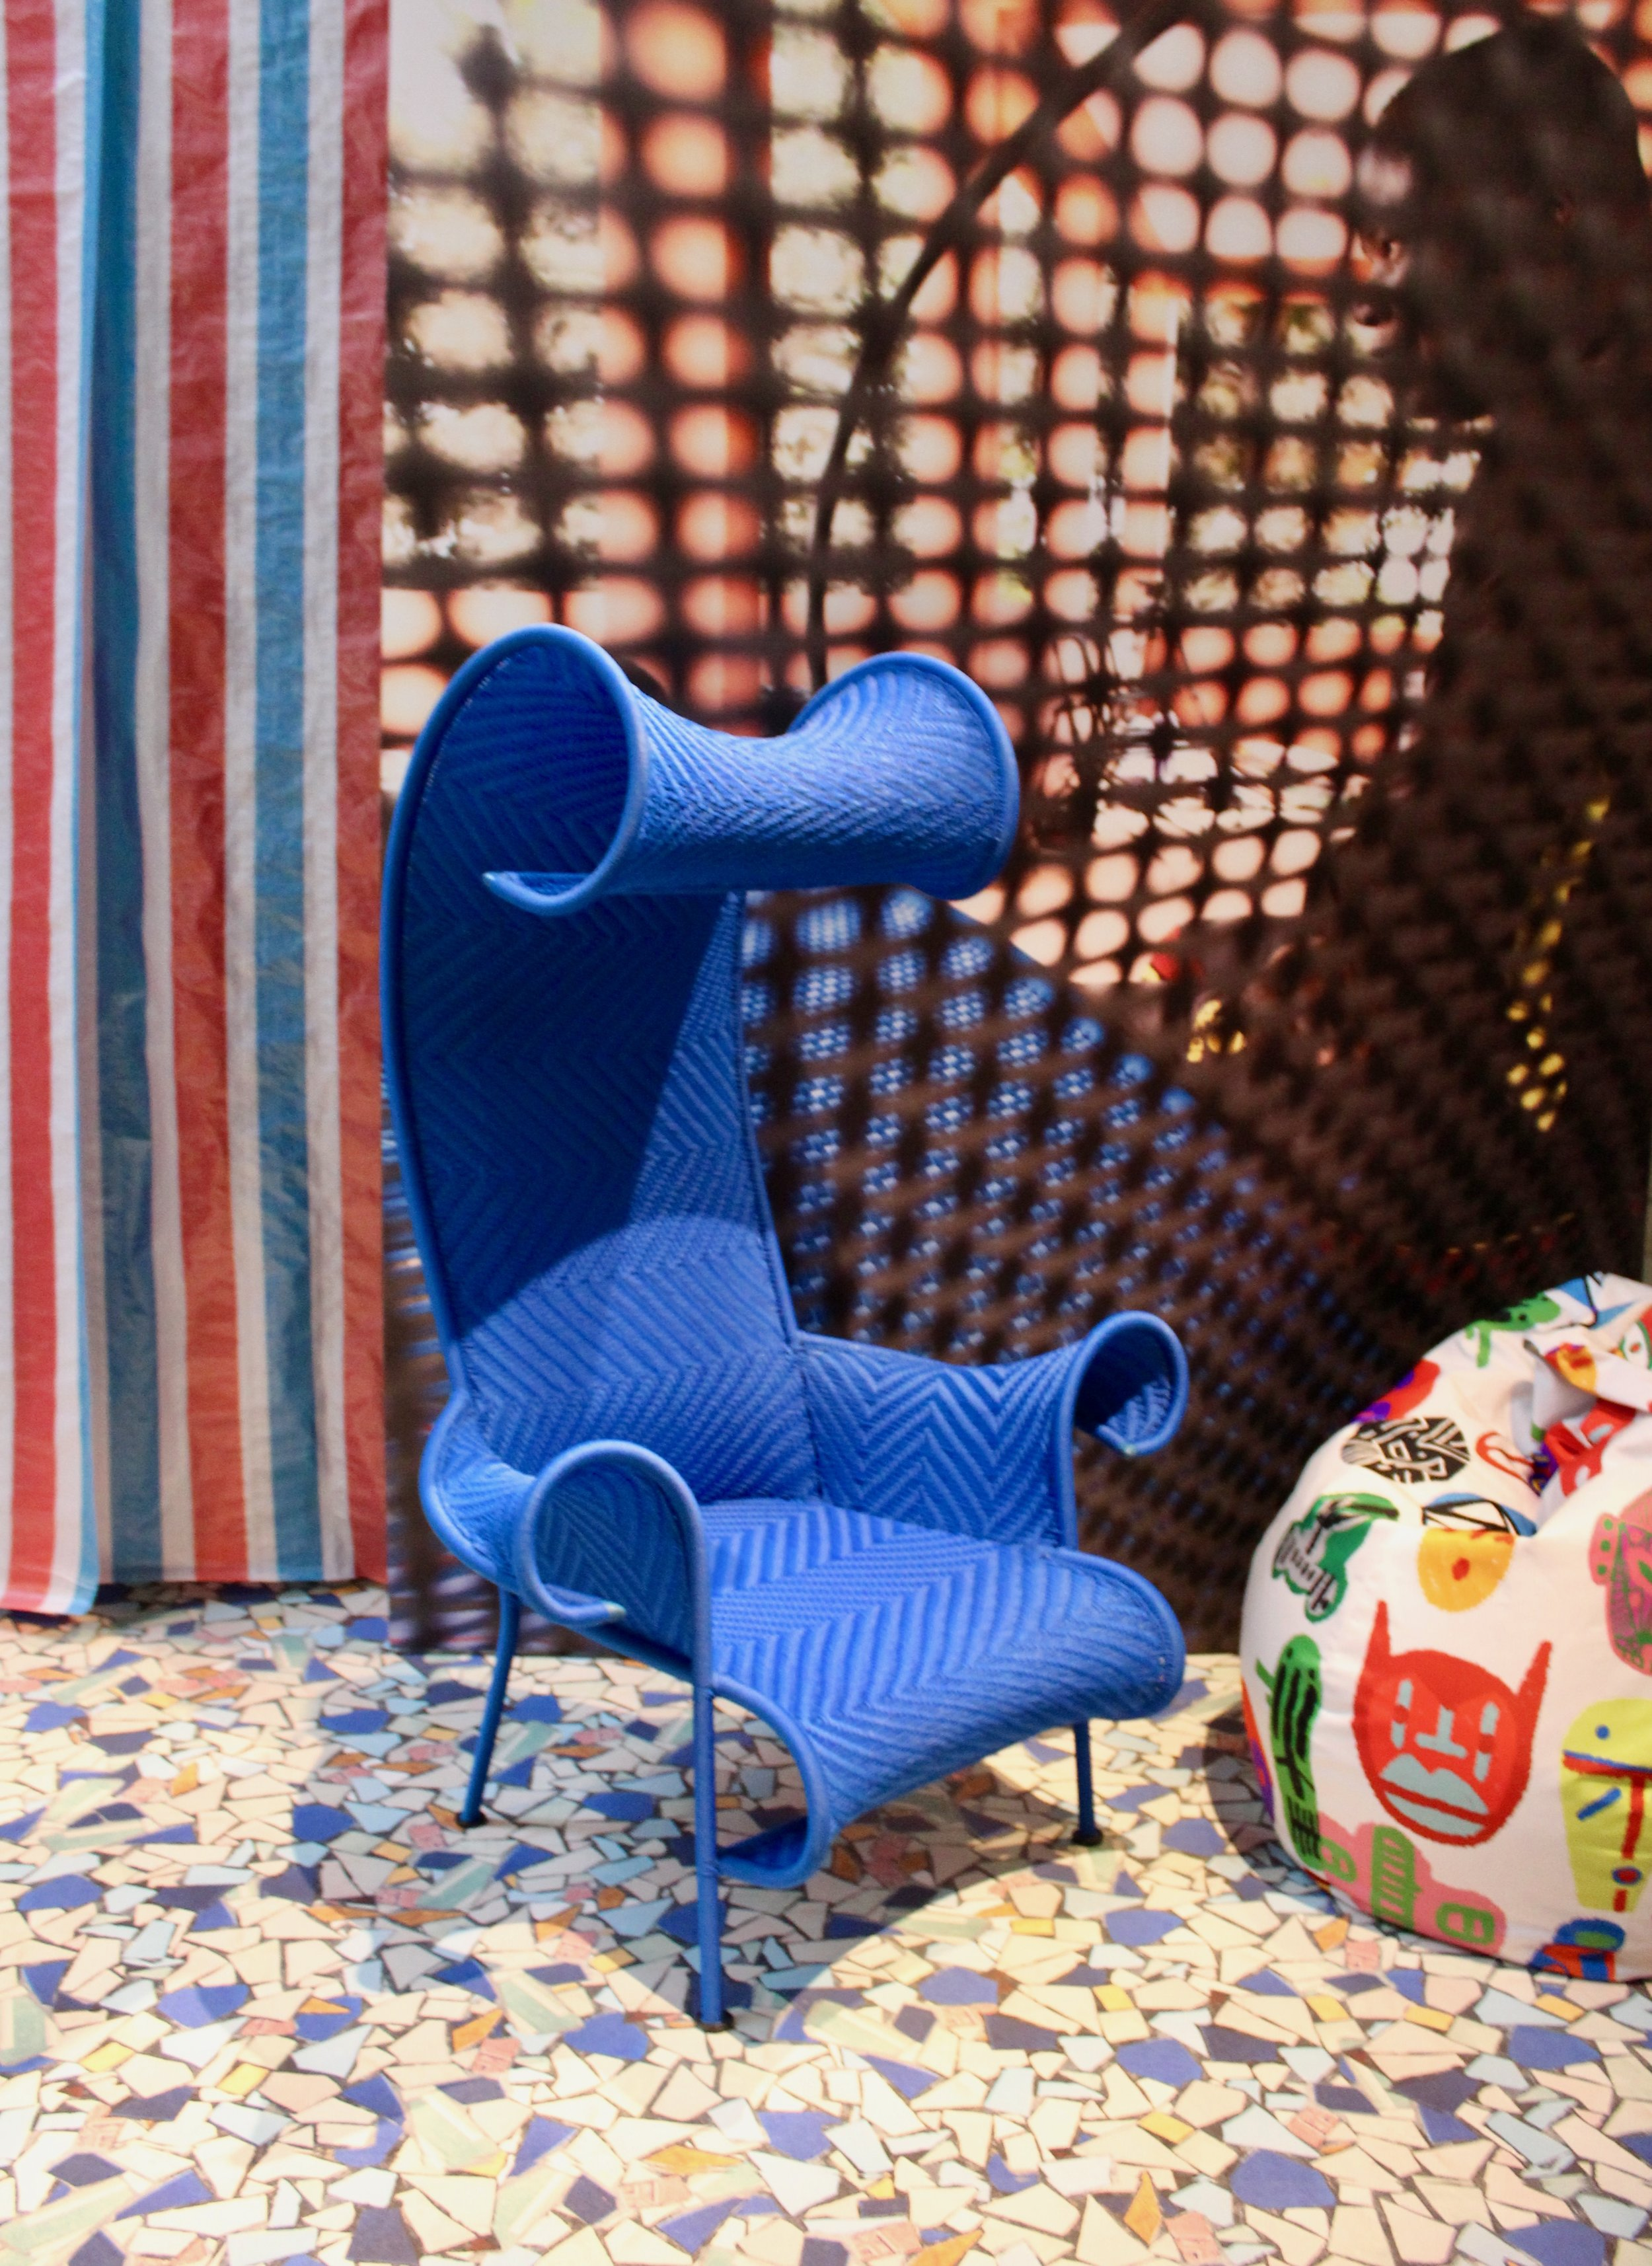 Tord Boontje for Moroso photography thatssocool